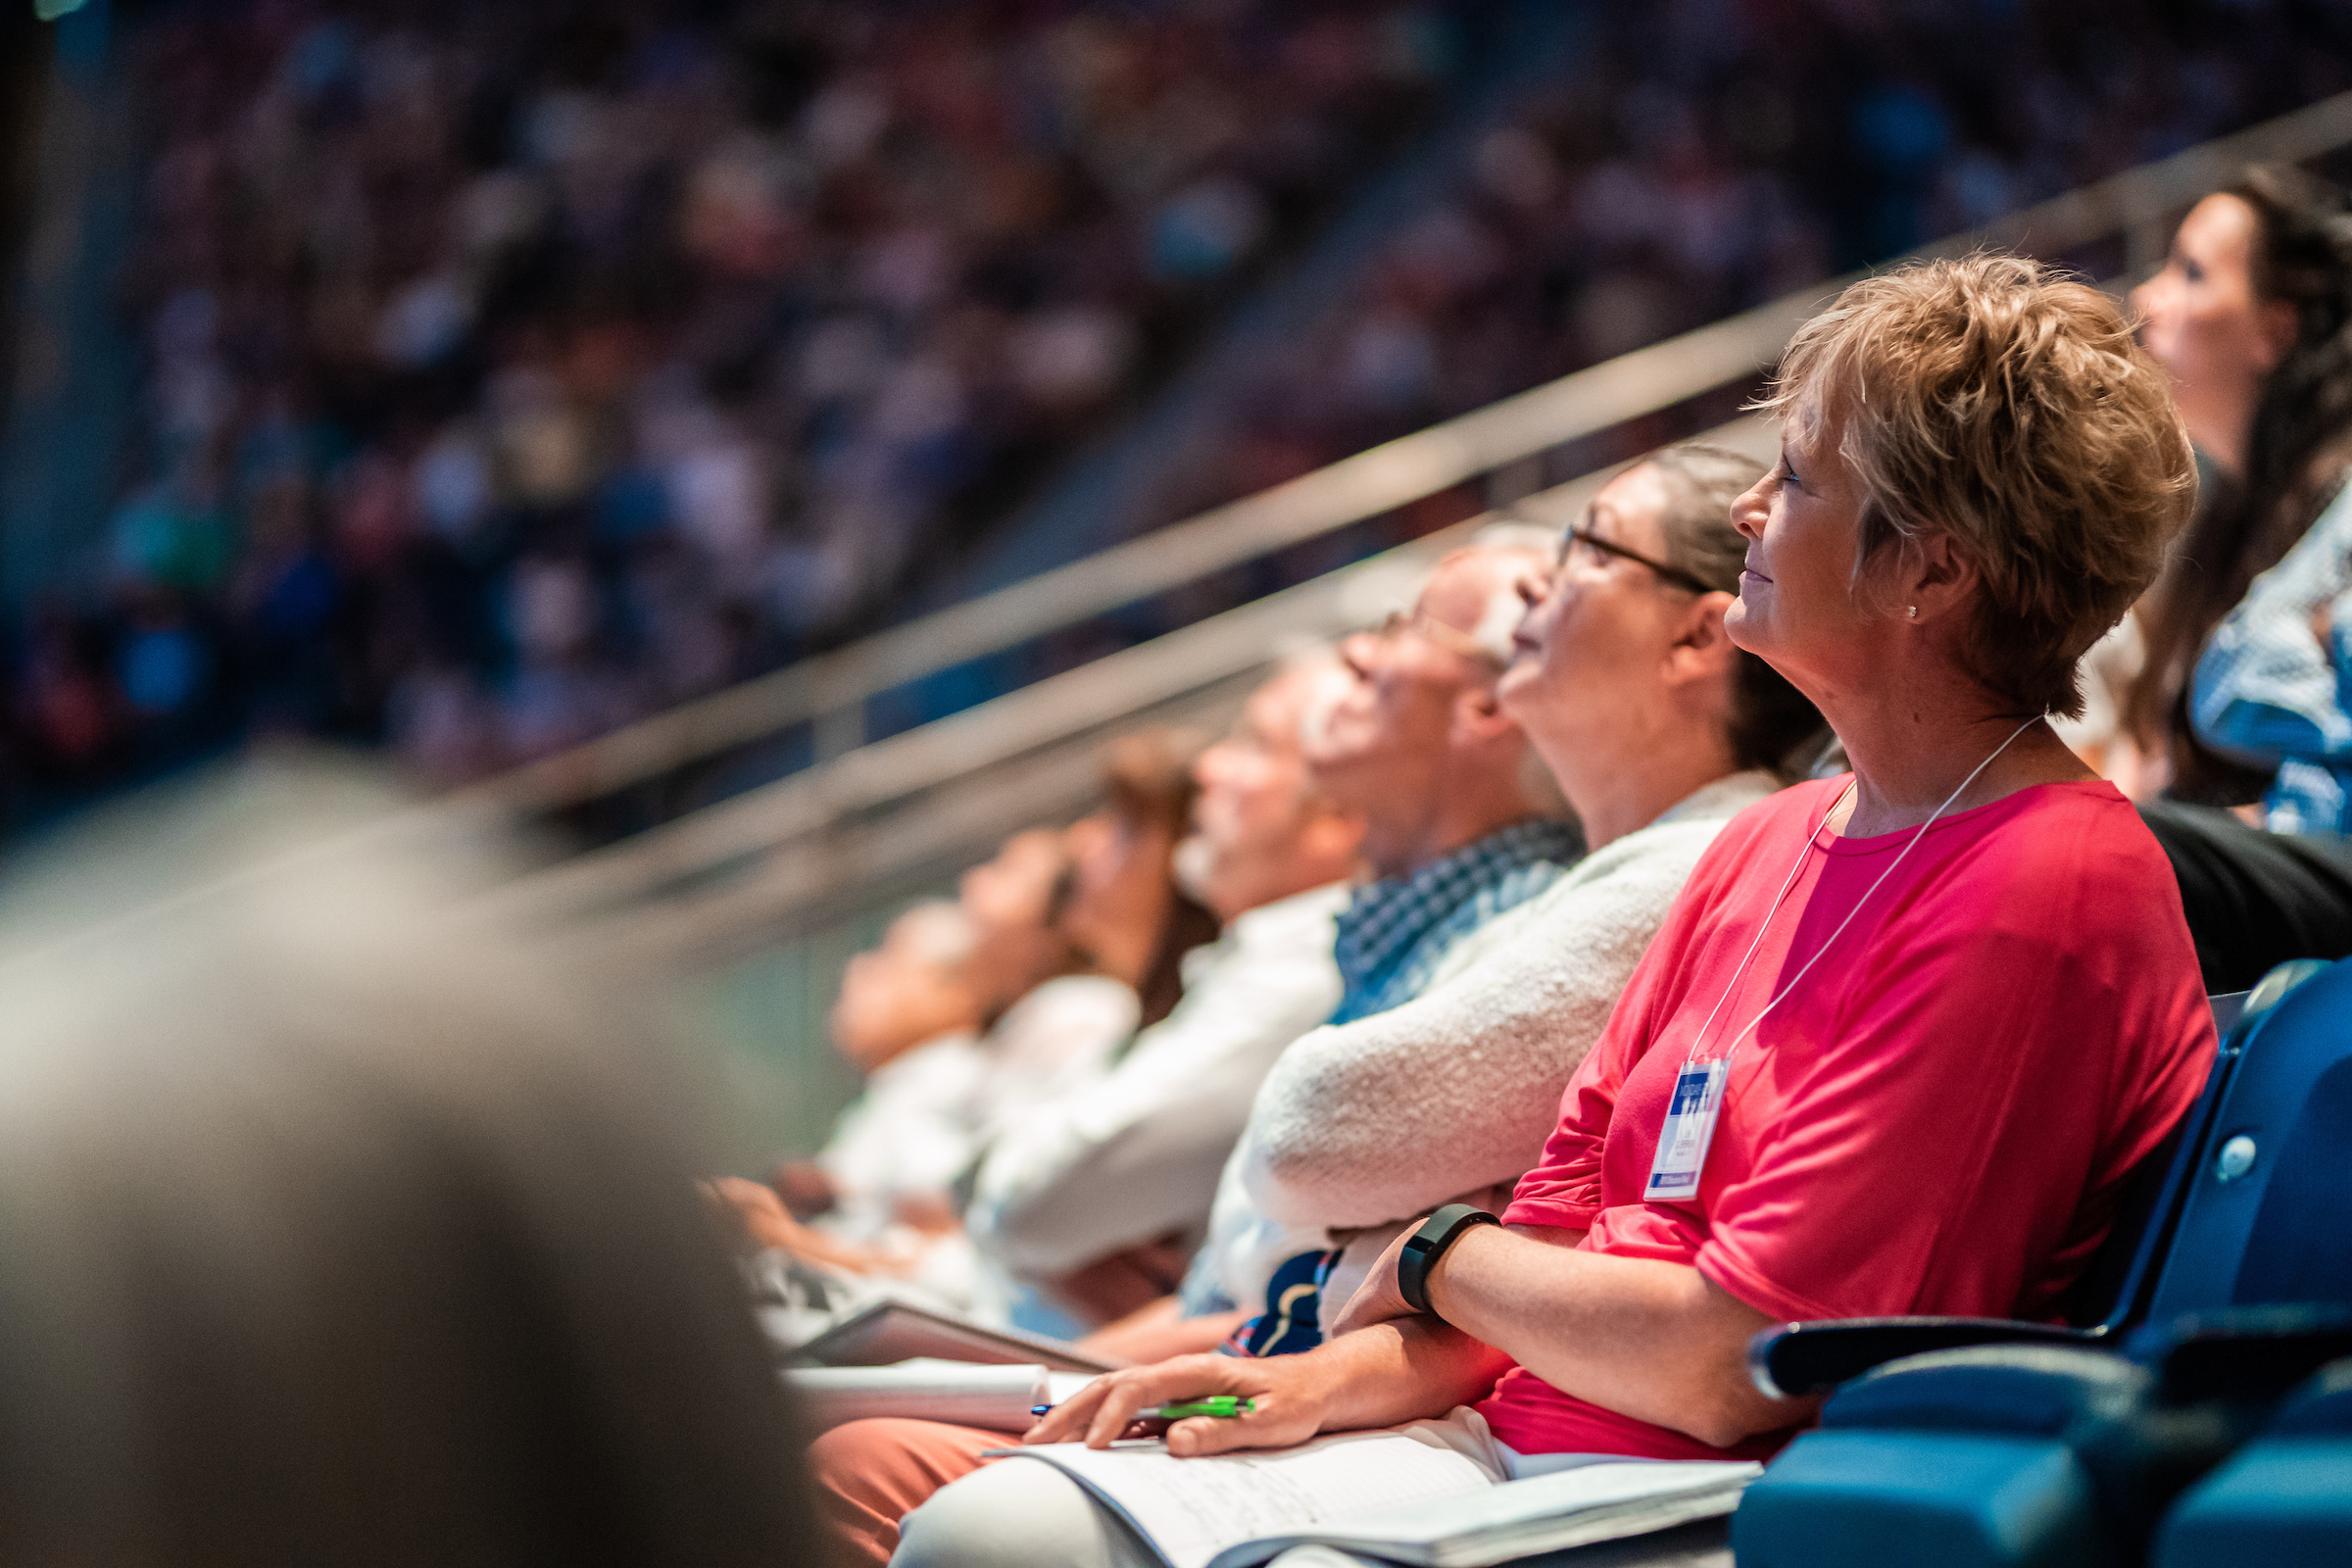 Education Week attendees listen during a devotional on Tuesday, Aug. 20, 2019.